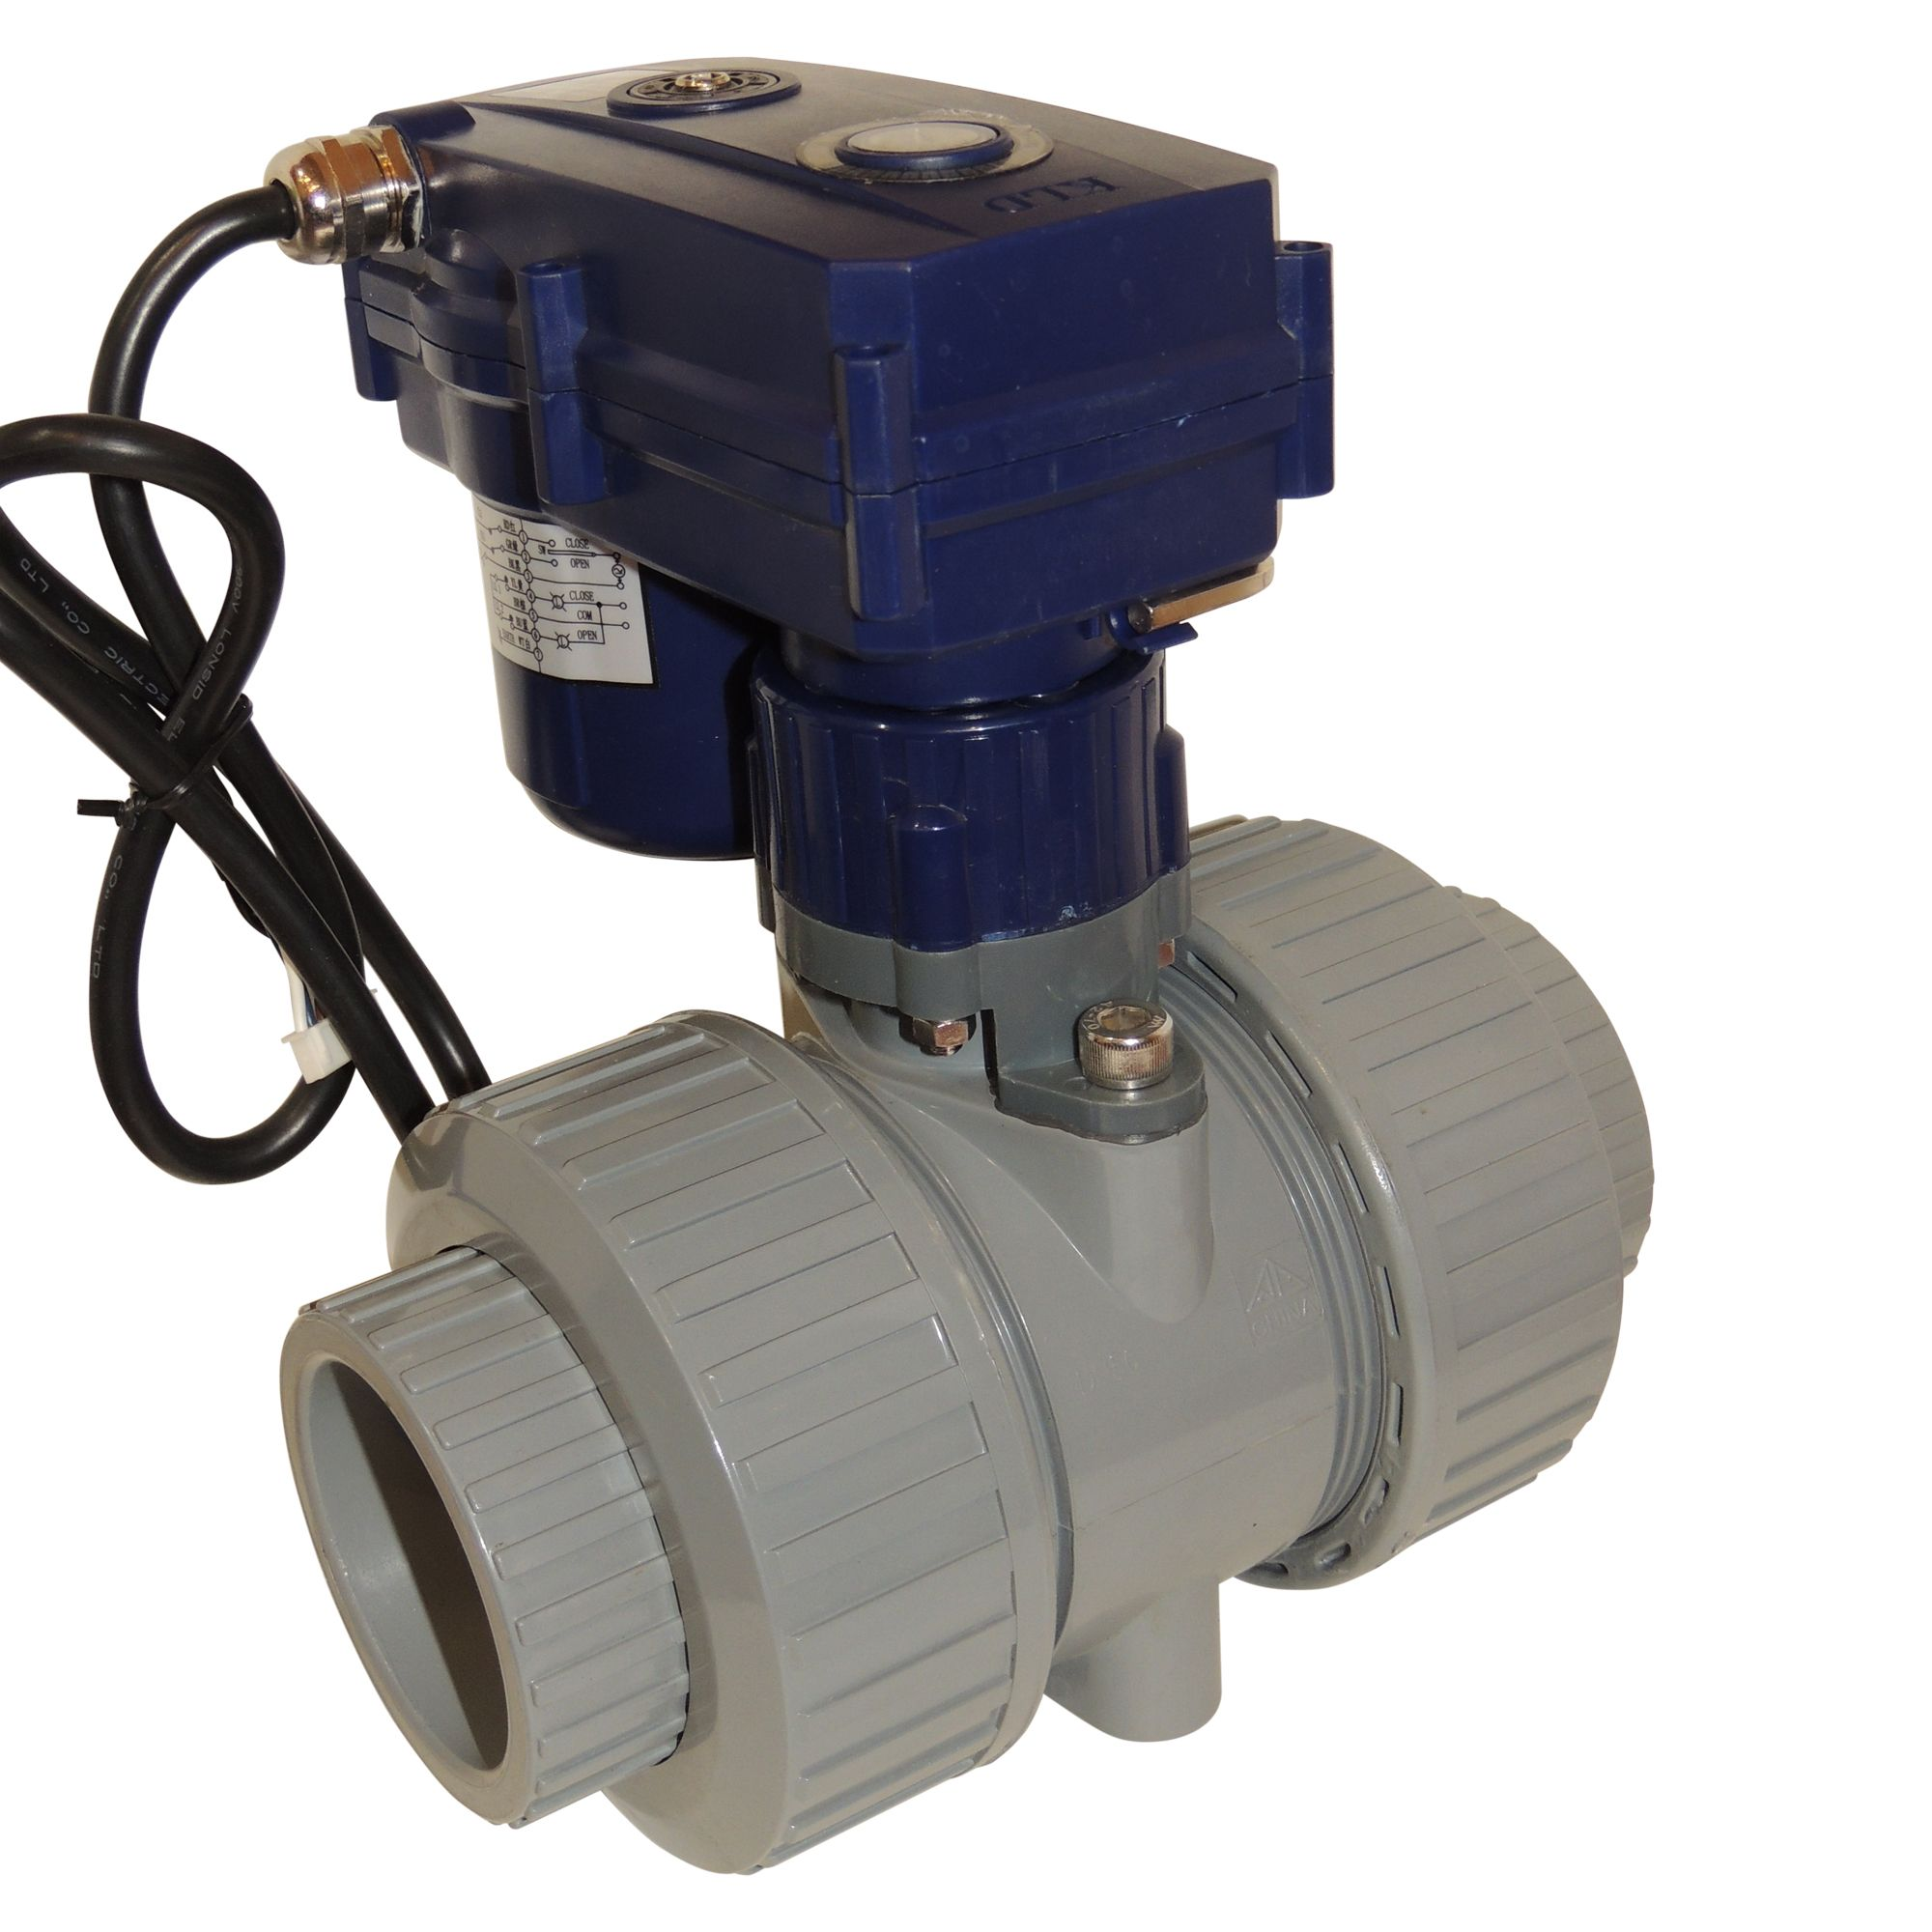 Very High Torque Motorized Ball Valve With Pvc Body In 1 1 2 2 Quiet Strong Reliable And Economic Water Treatment Valve Home Appliances